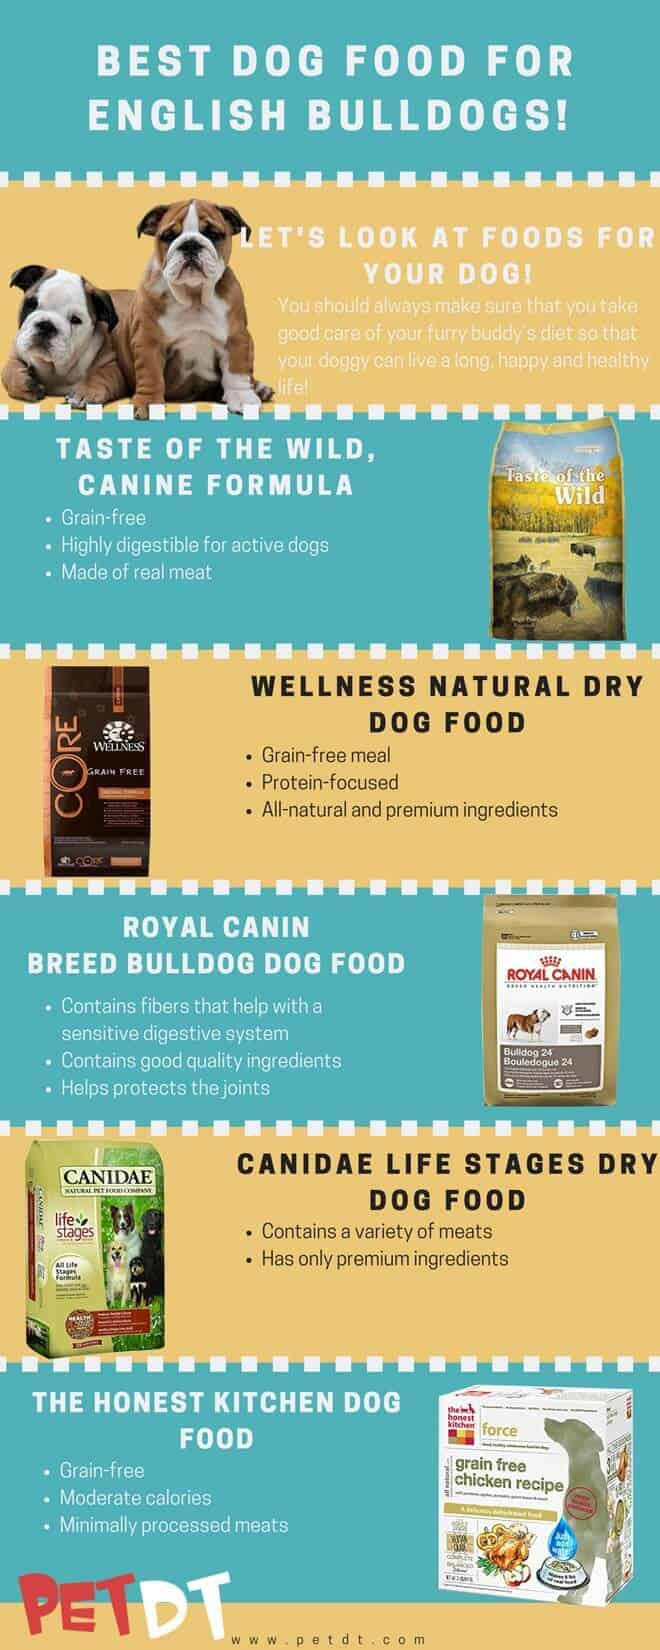 The Best Dog Food For English Bulldogs In 2019 Petdt